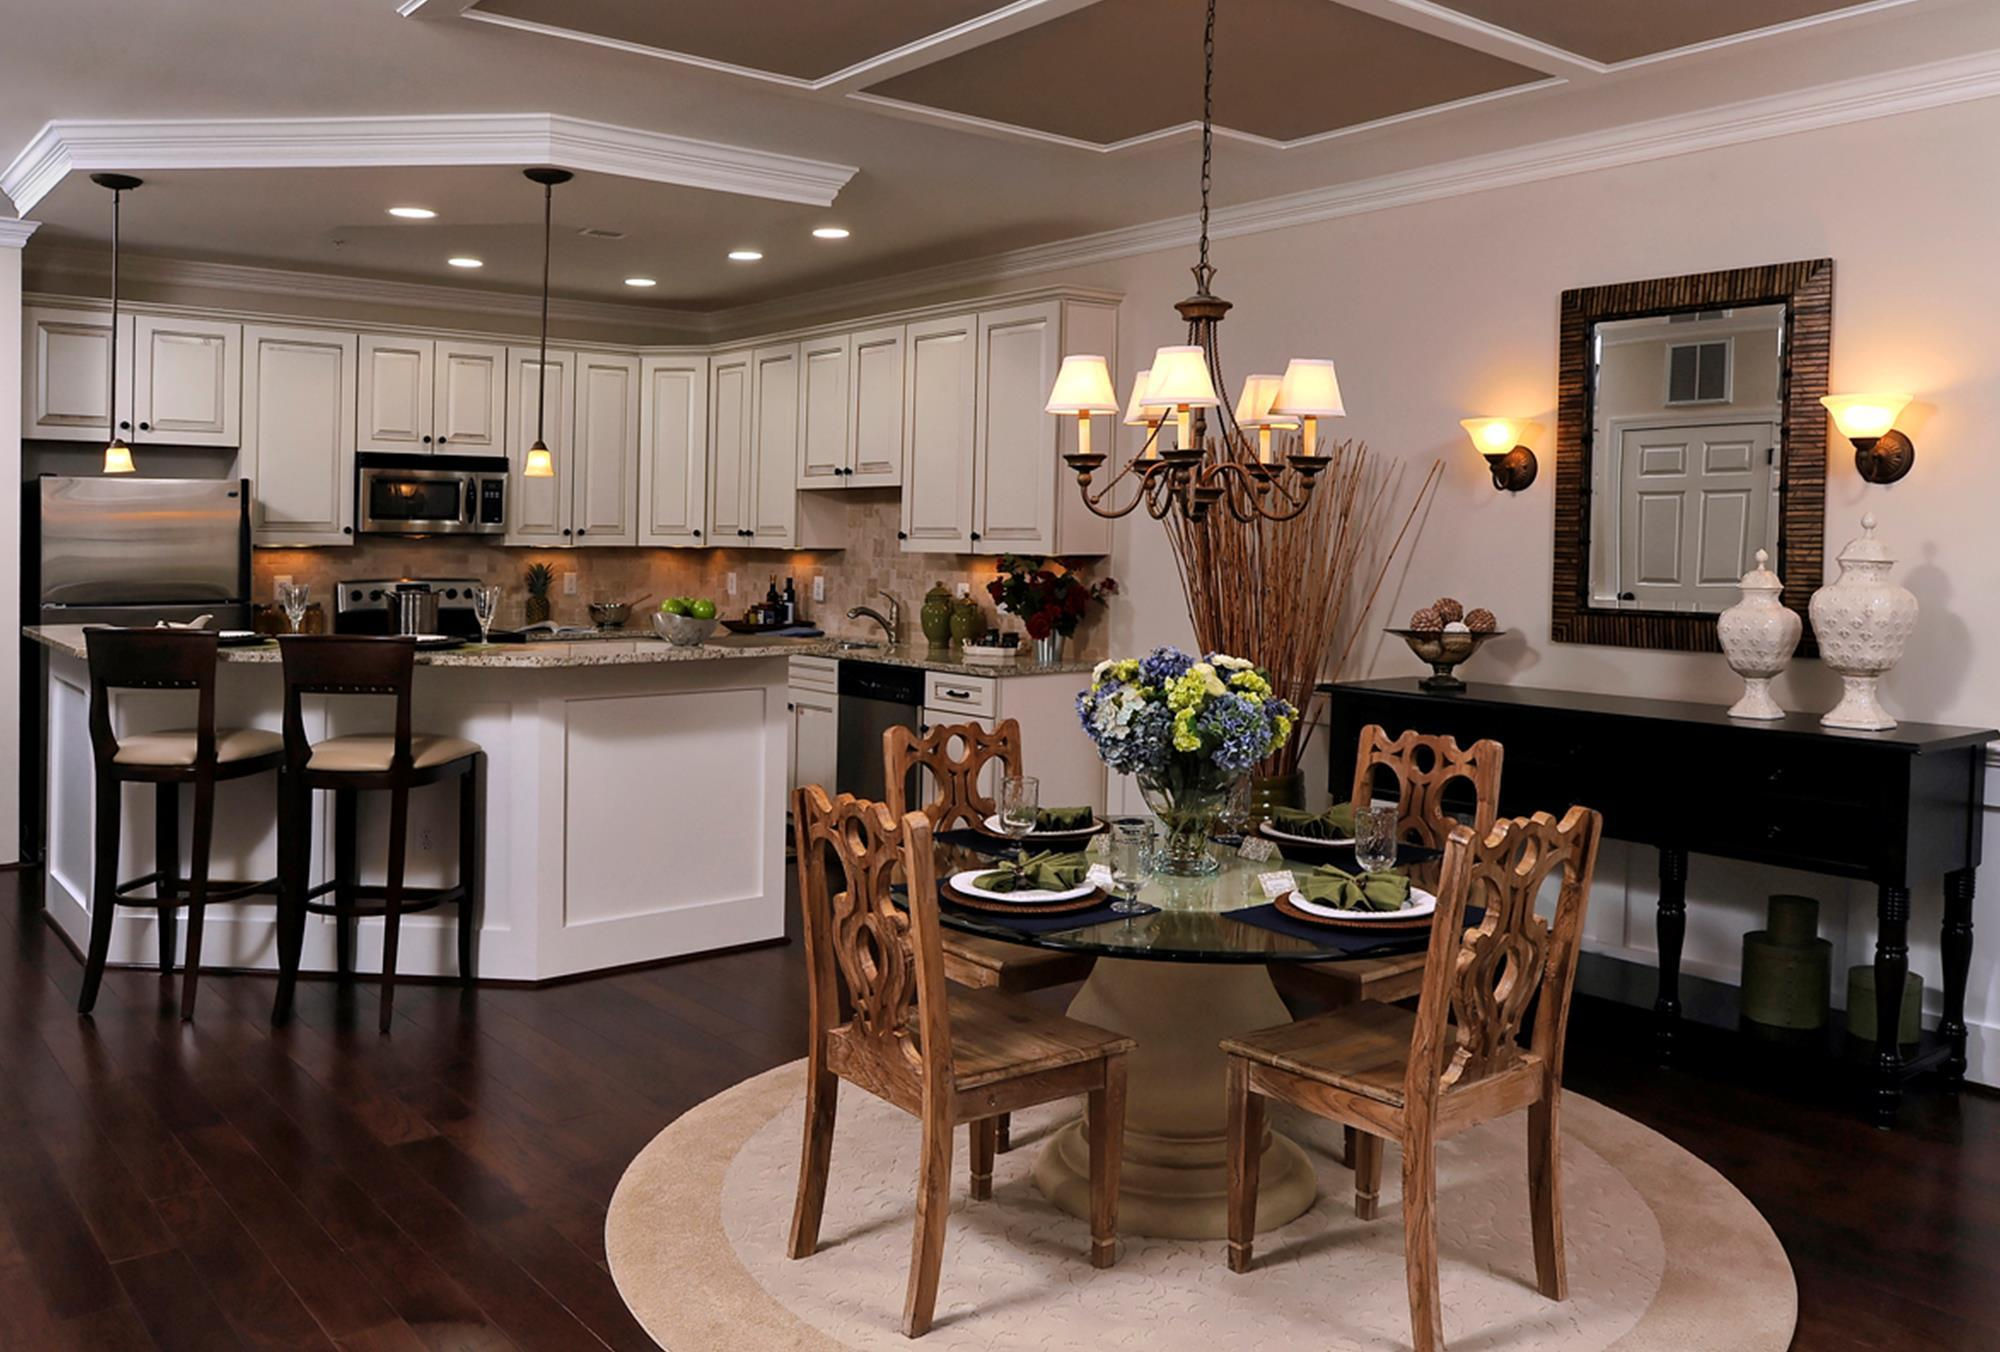 Kitchen featured in the Chatham Classic By Covell Communities in Eastern Shore, MD